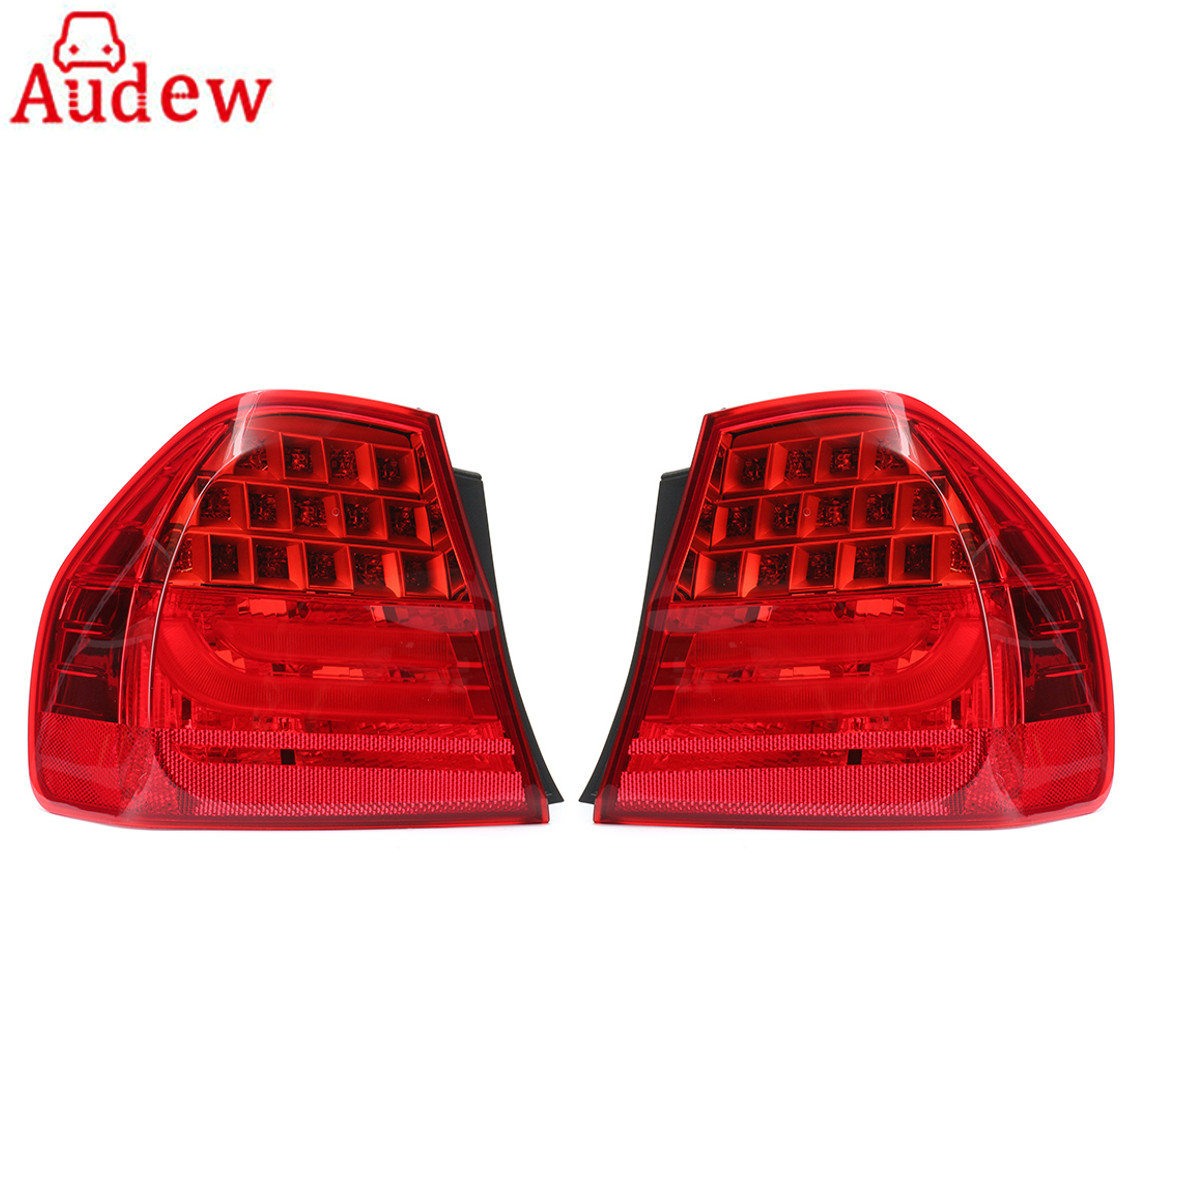 1Pcs Car Rear TAIL LAMP LIGHT LED Light  LEFT / RIGHT SIDE FOR BMW 3 SERIES E90 2008-2011 free shipping for skoda octavia sedan a5 2005 2006 2007 2008 right side rear lamp tail light